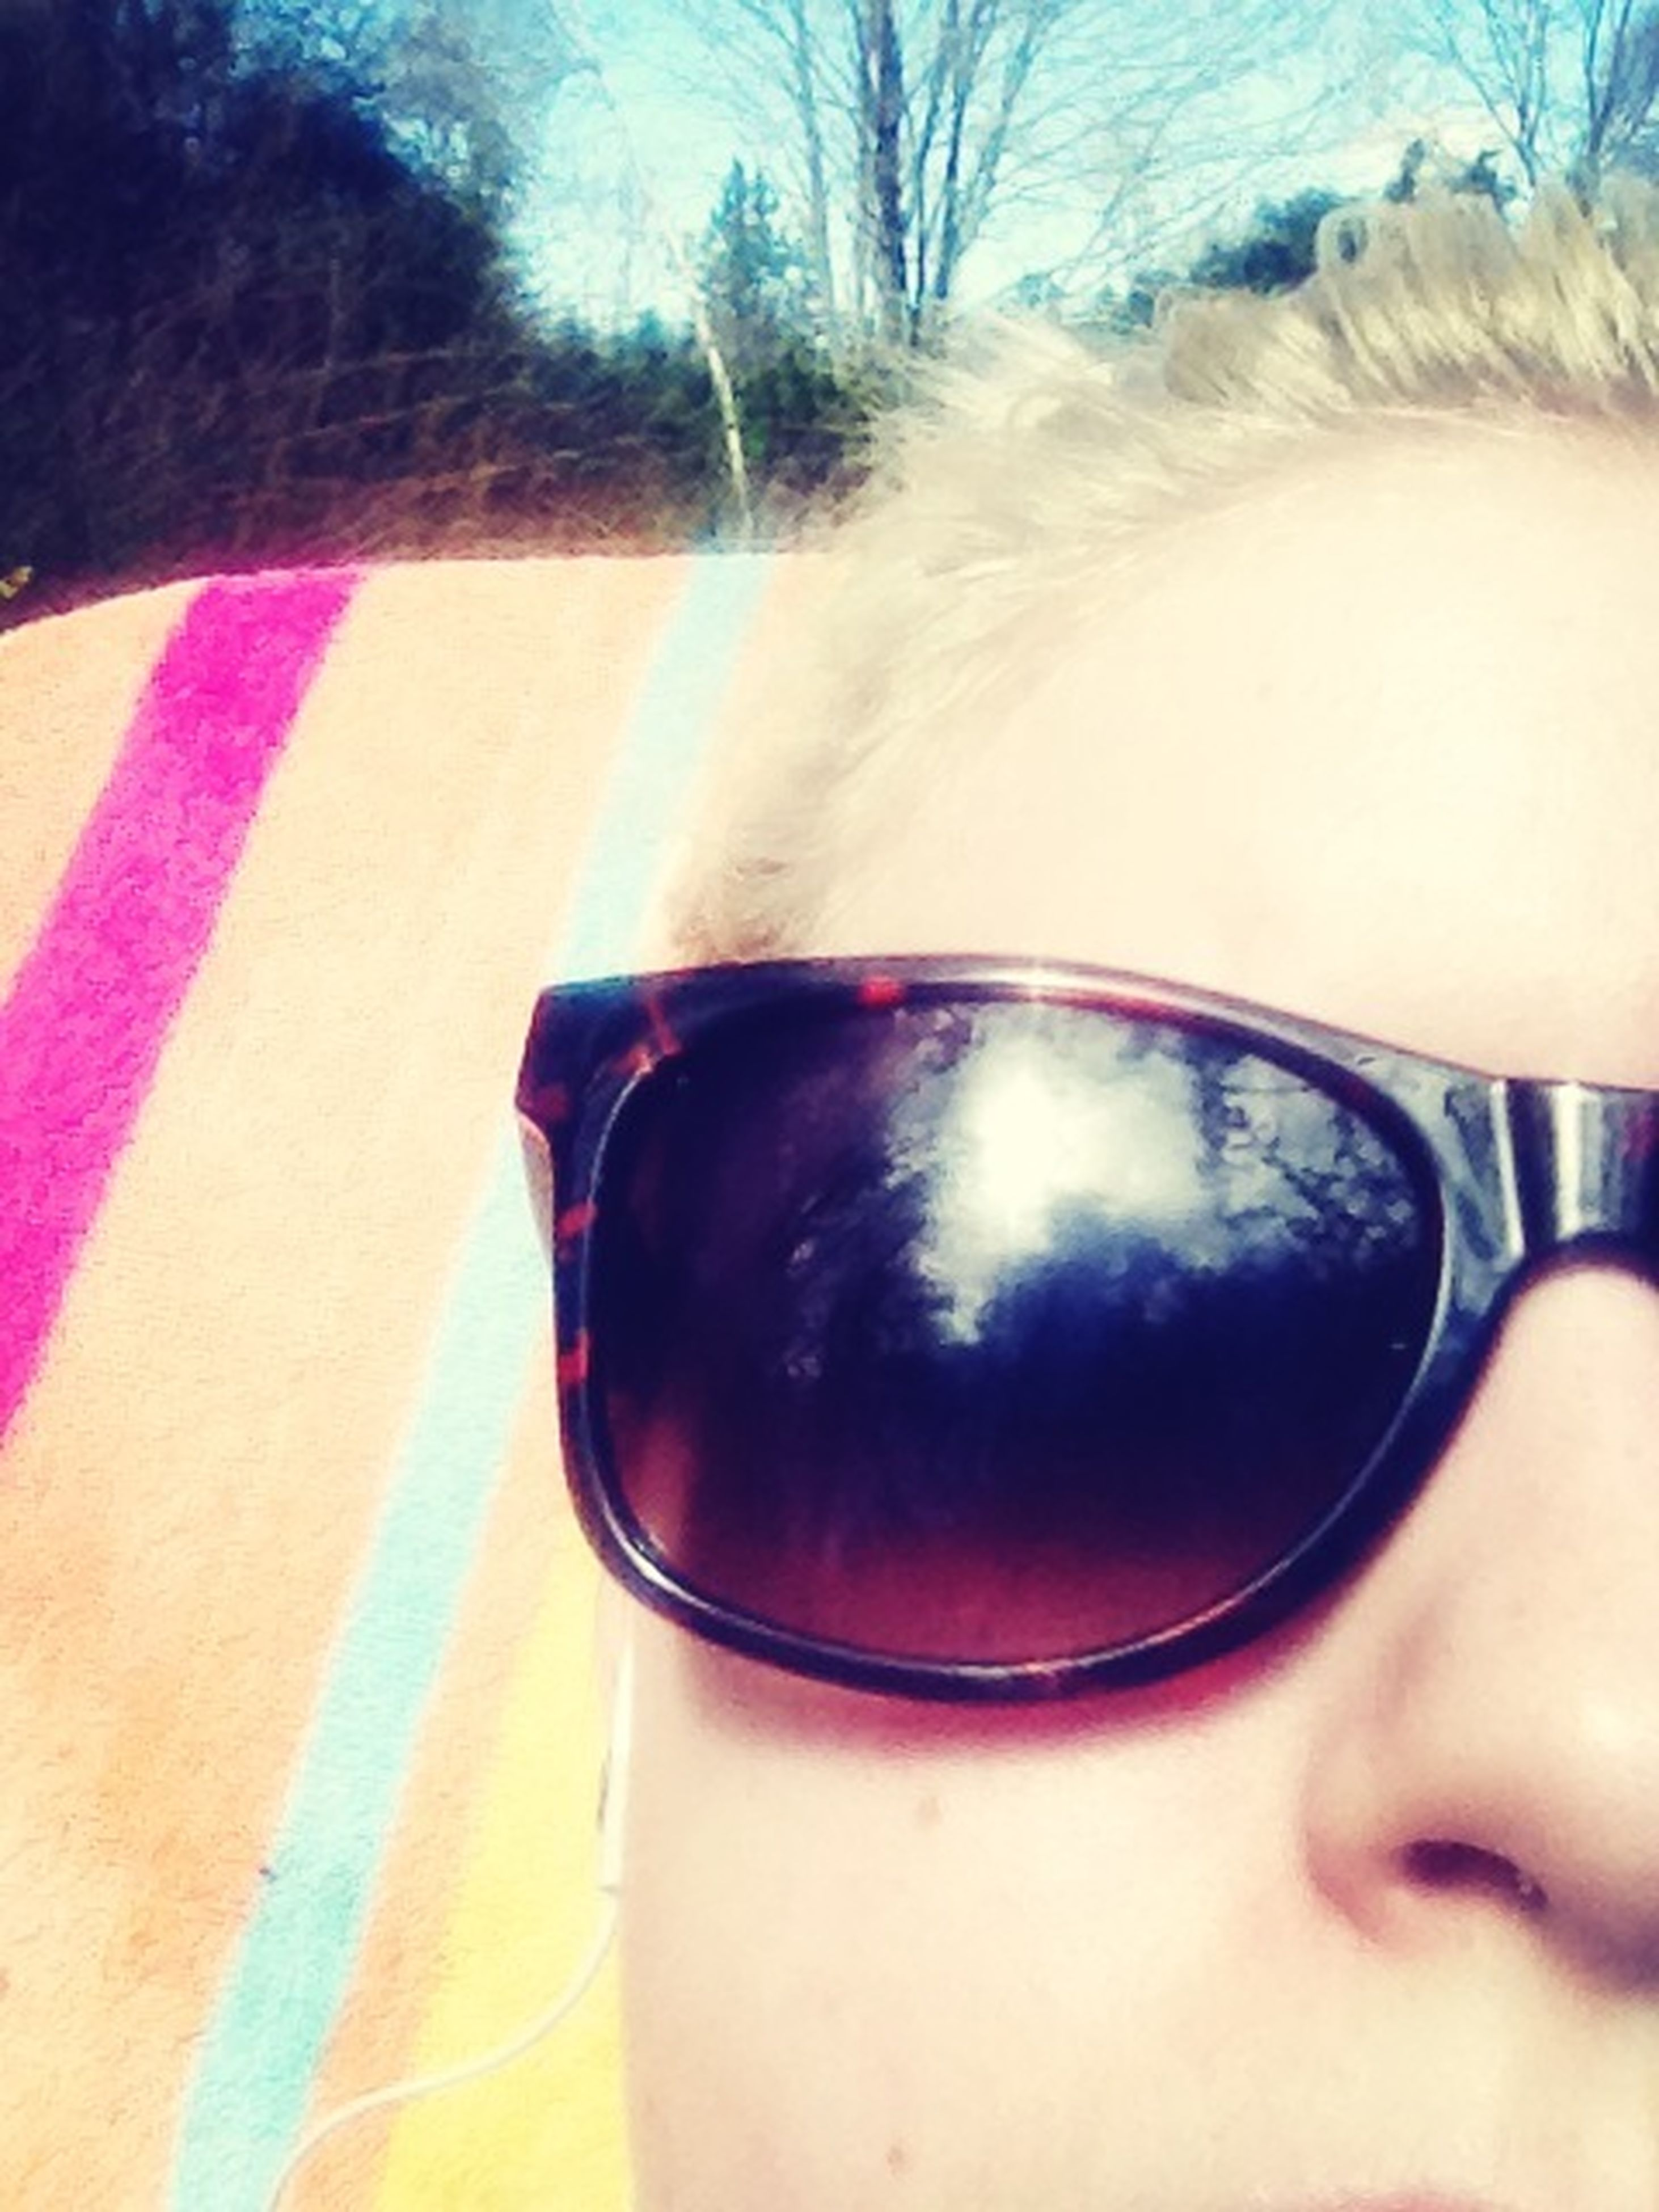 sunglasses, close-up, lifestyles, leisure activity, reflection, headshot, part of, eyeglasses, person, focus on foreground, head and shoulders, cropped, day, drink, car, young adult